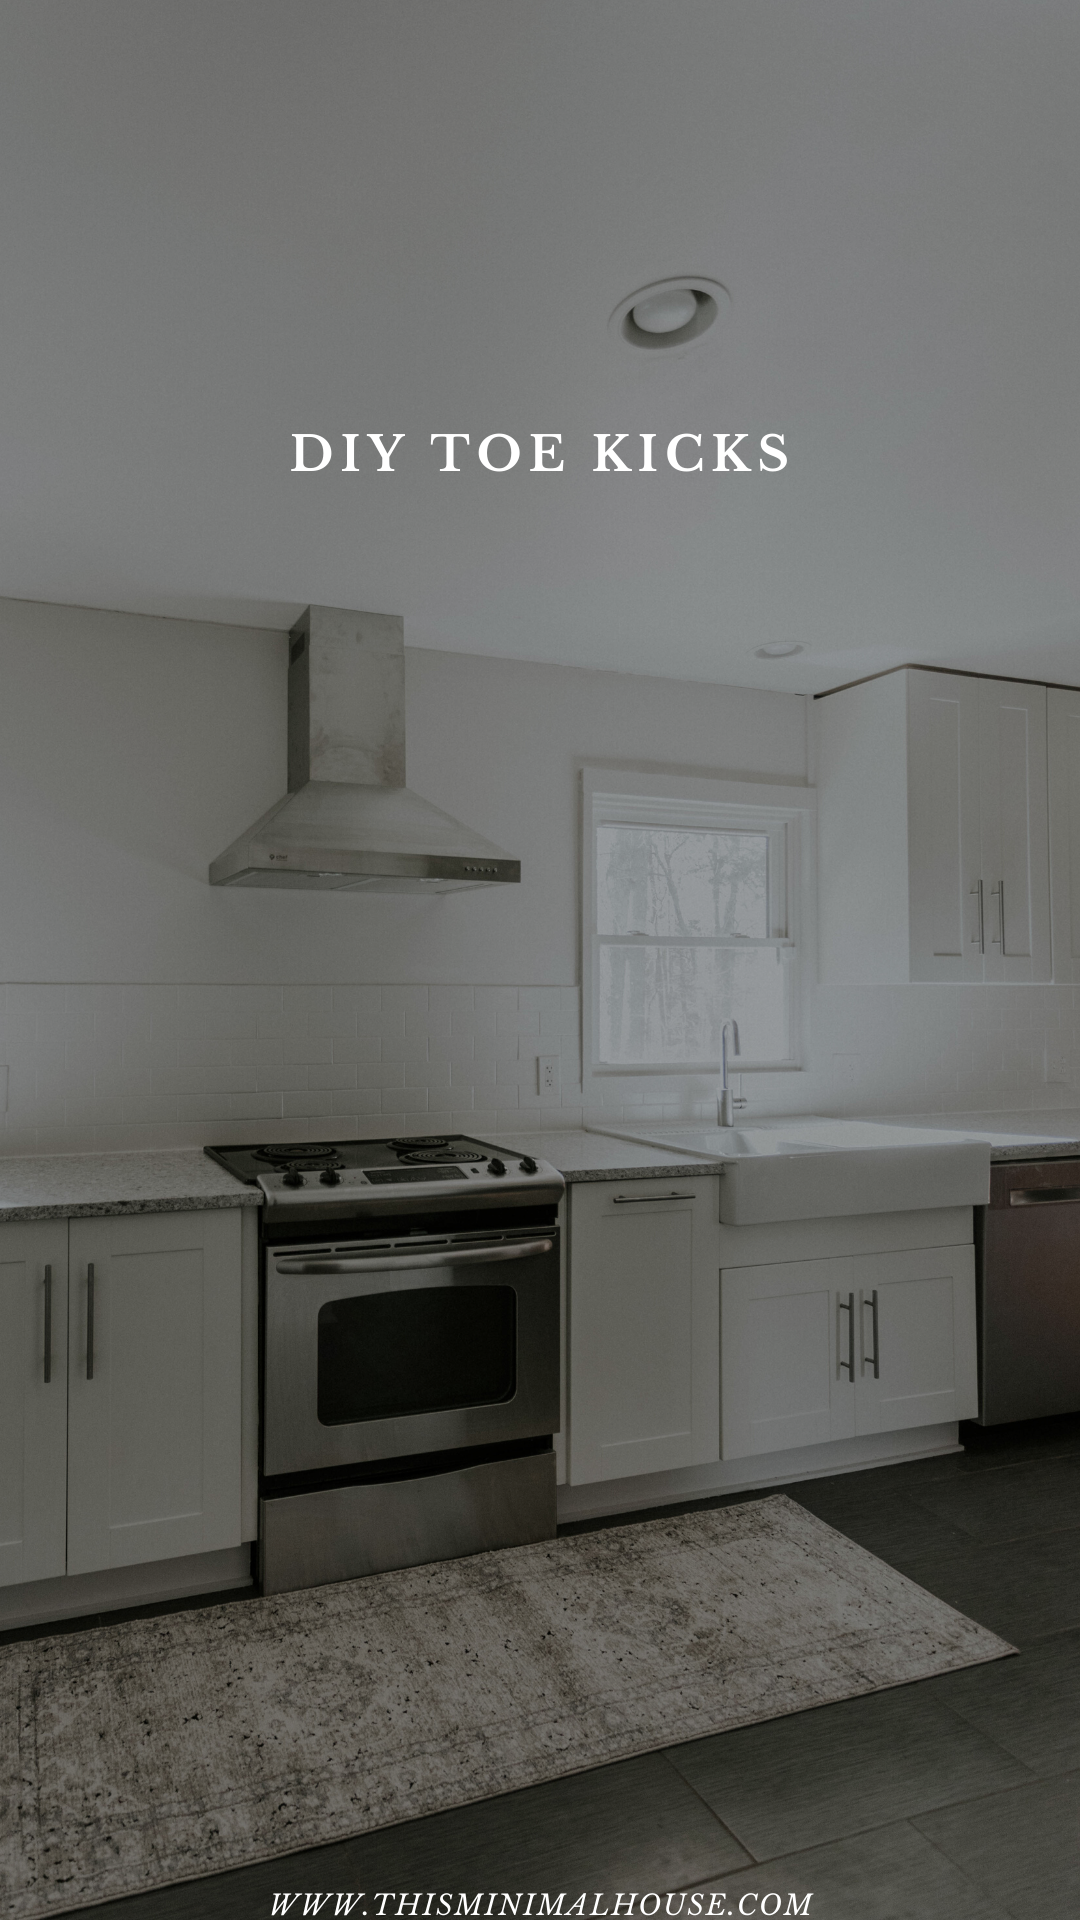 This Minimal House Diy Minimalism Home Improvement In 2020 Kitchen Cabinets Toe Kick Installing Kitchen Cabinets Ikea Hack Kitchen